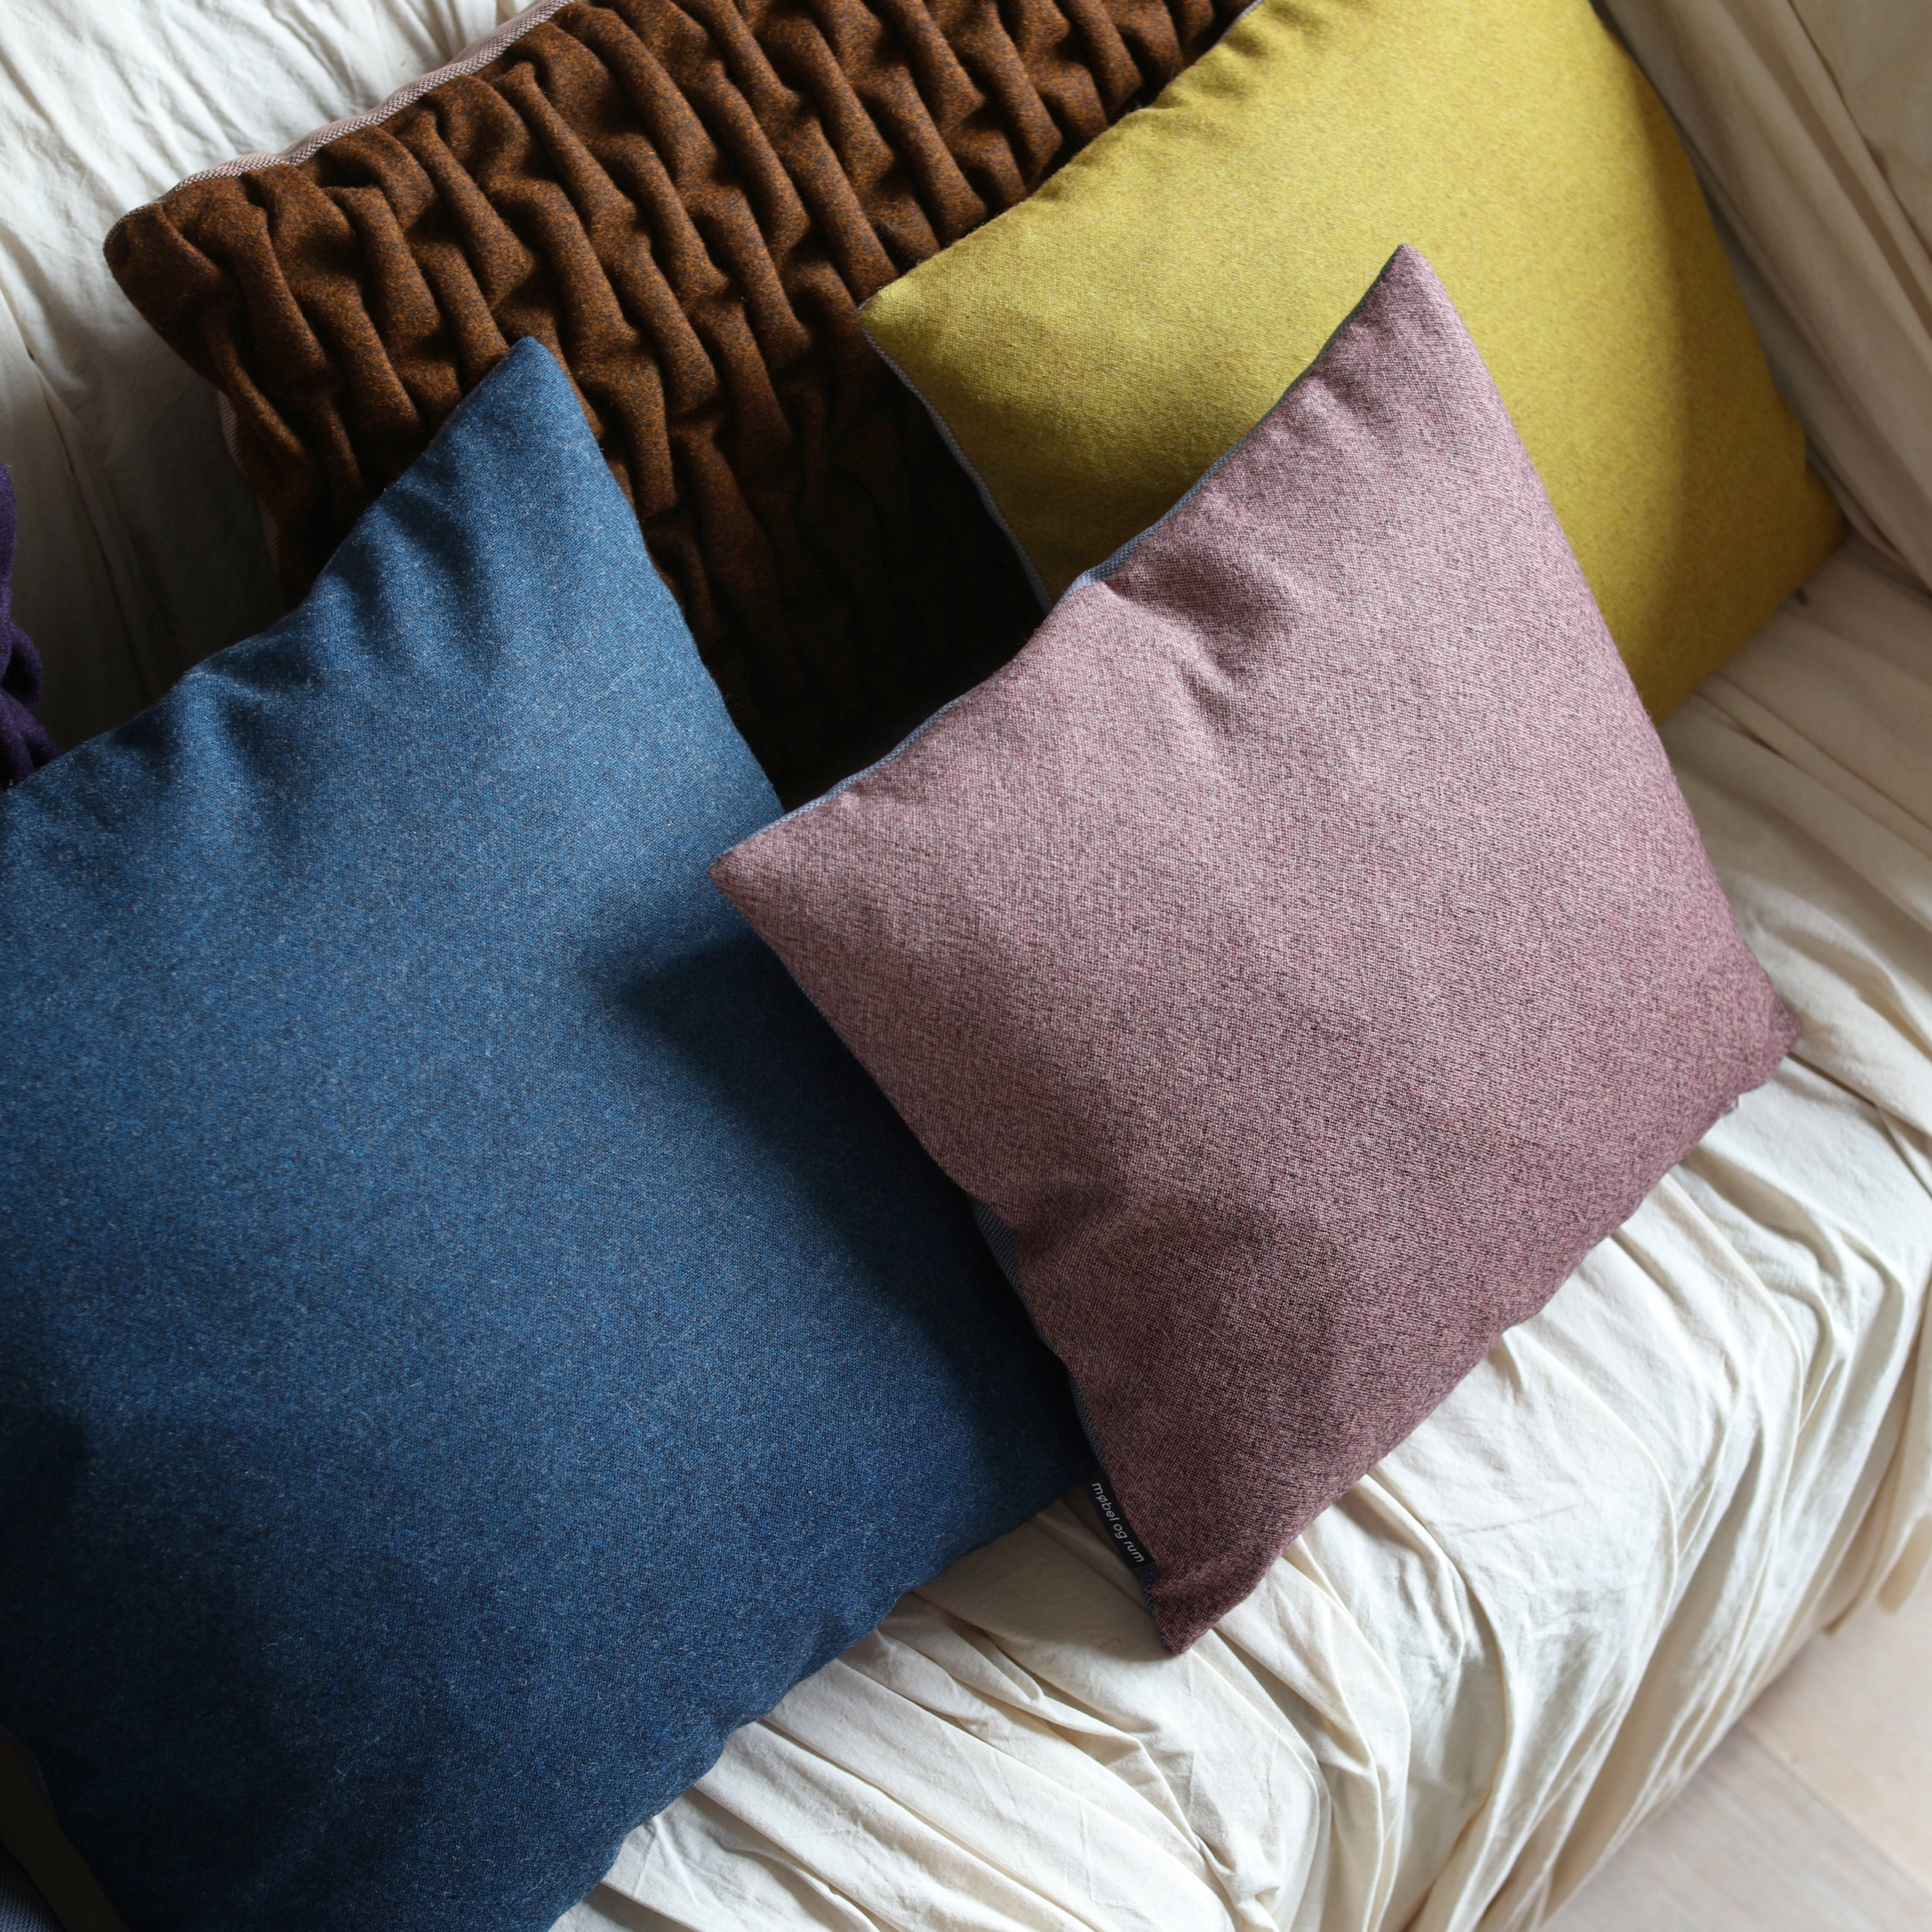 REVIVE - Cushion Series : Many variations